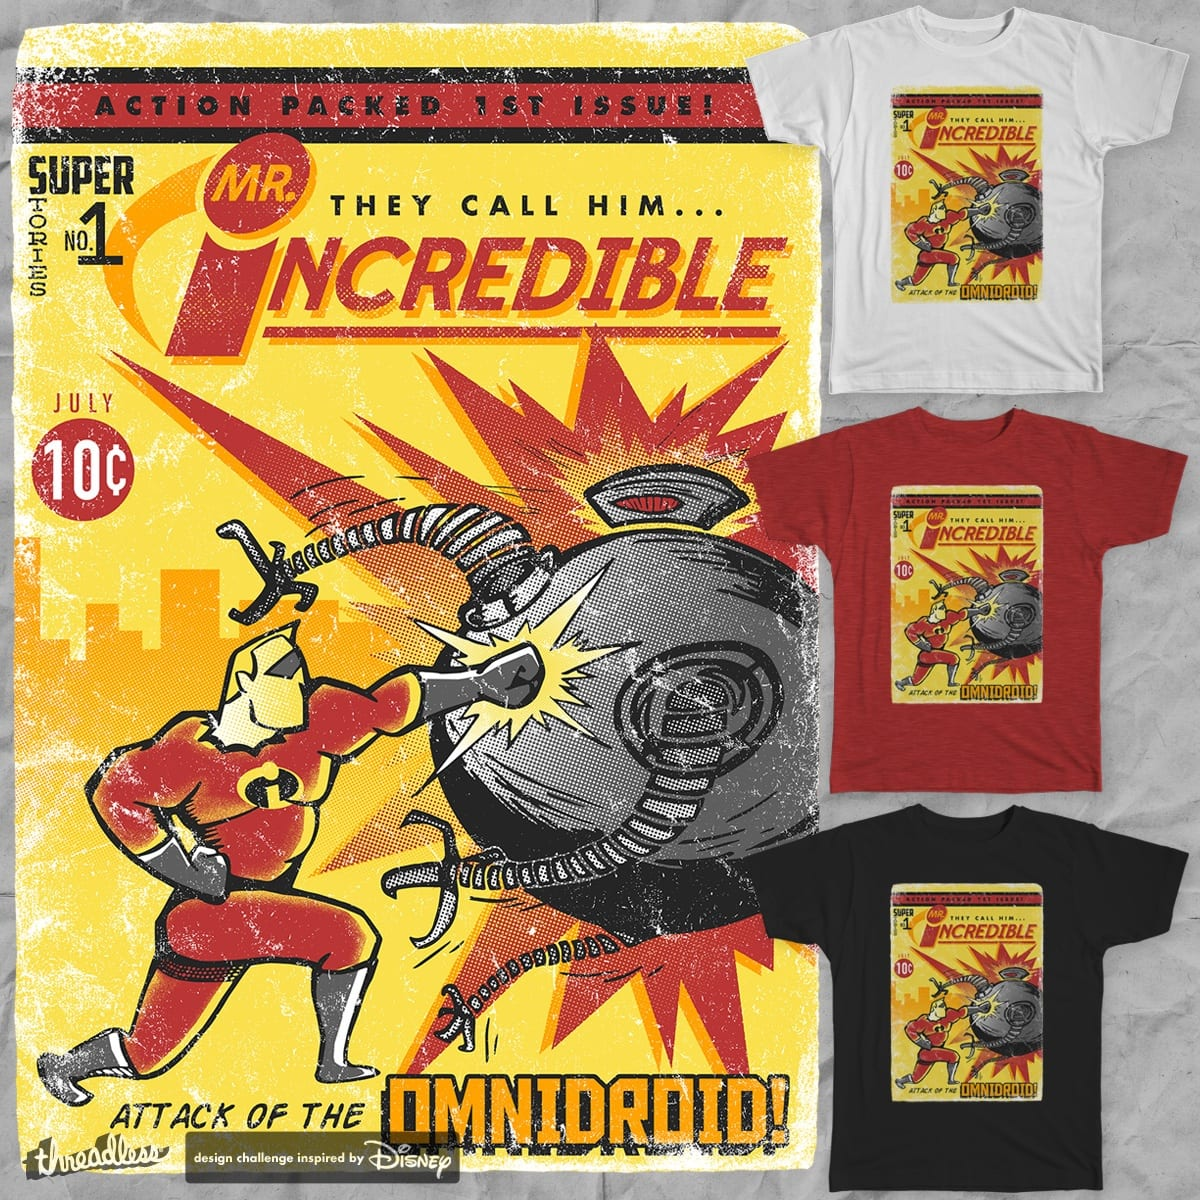 Action Packed 1st Issue! by mofugger69 on Threadless